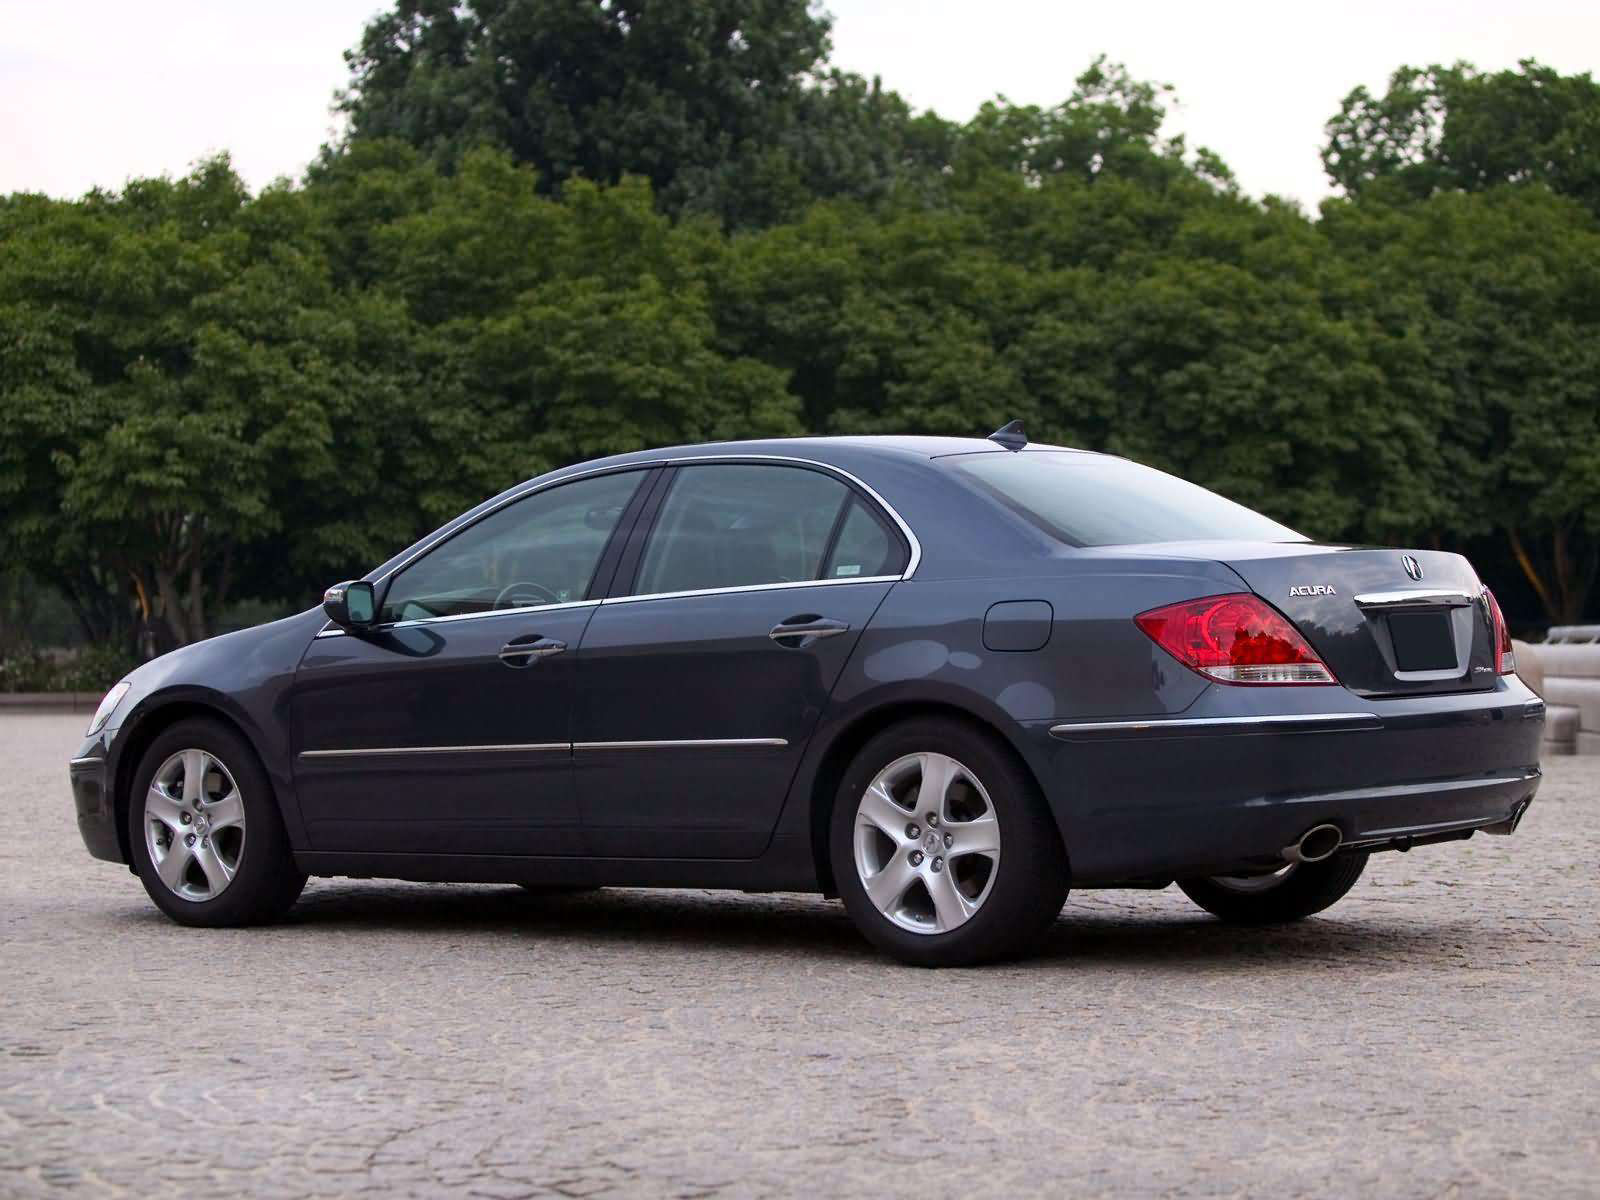 2005 acura rl car insurance information. Black Bedroom Furniture Sets. Home Design Ideas